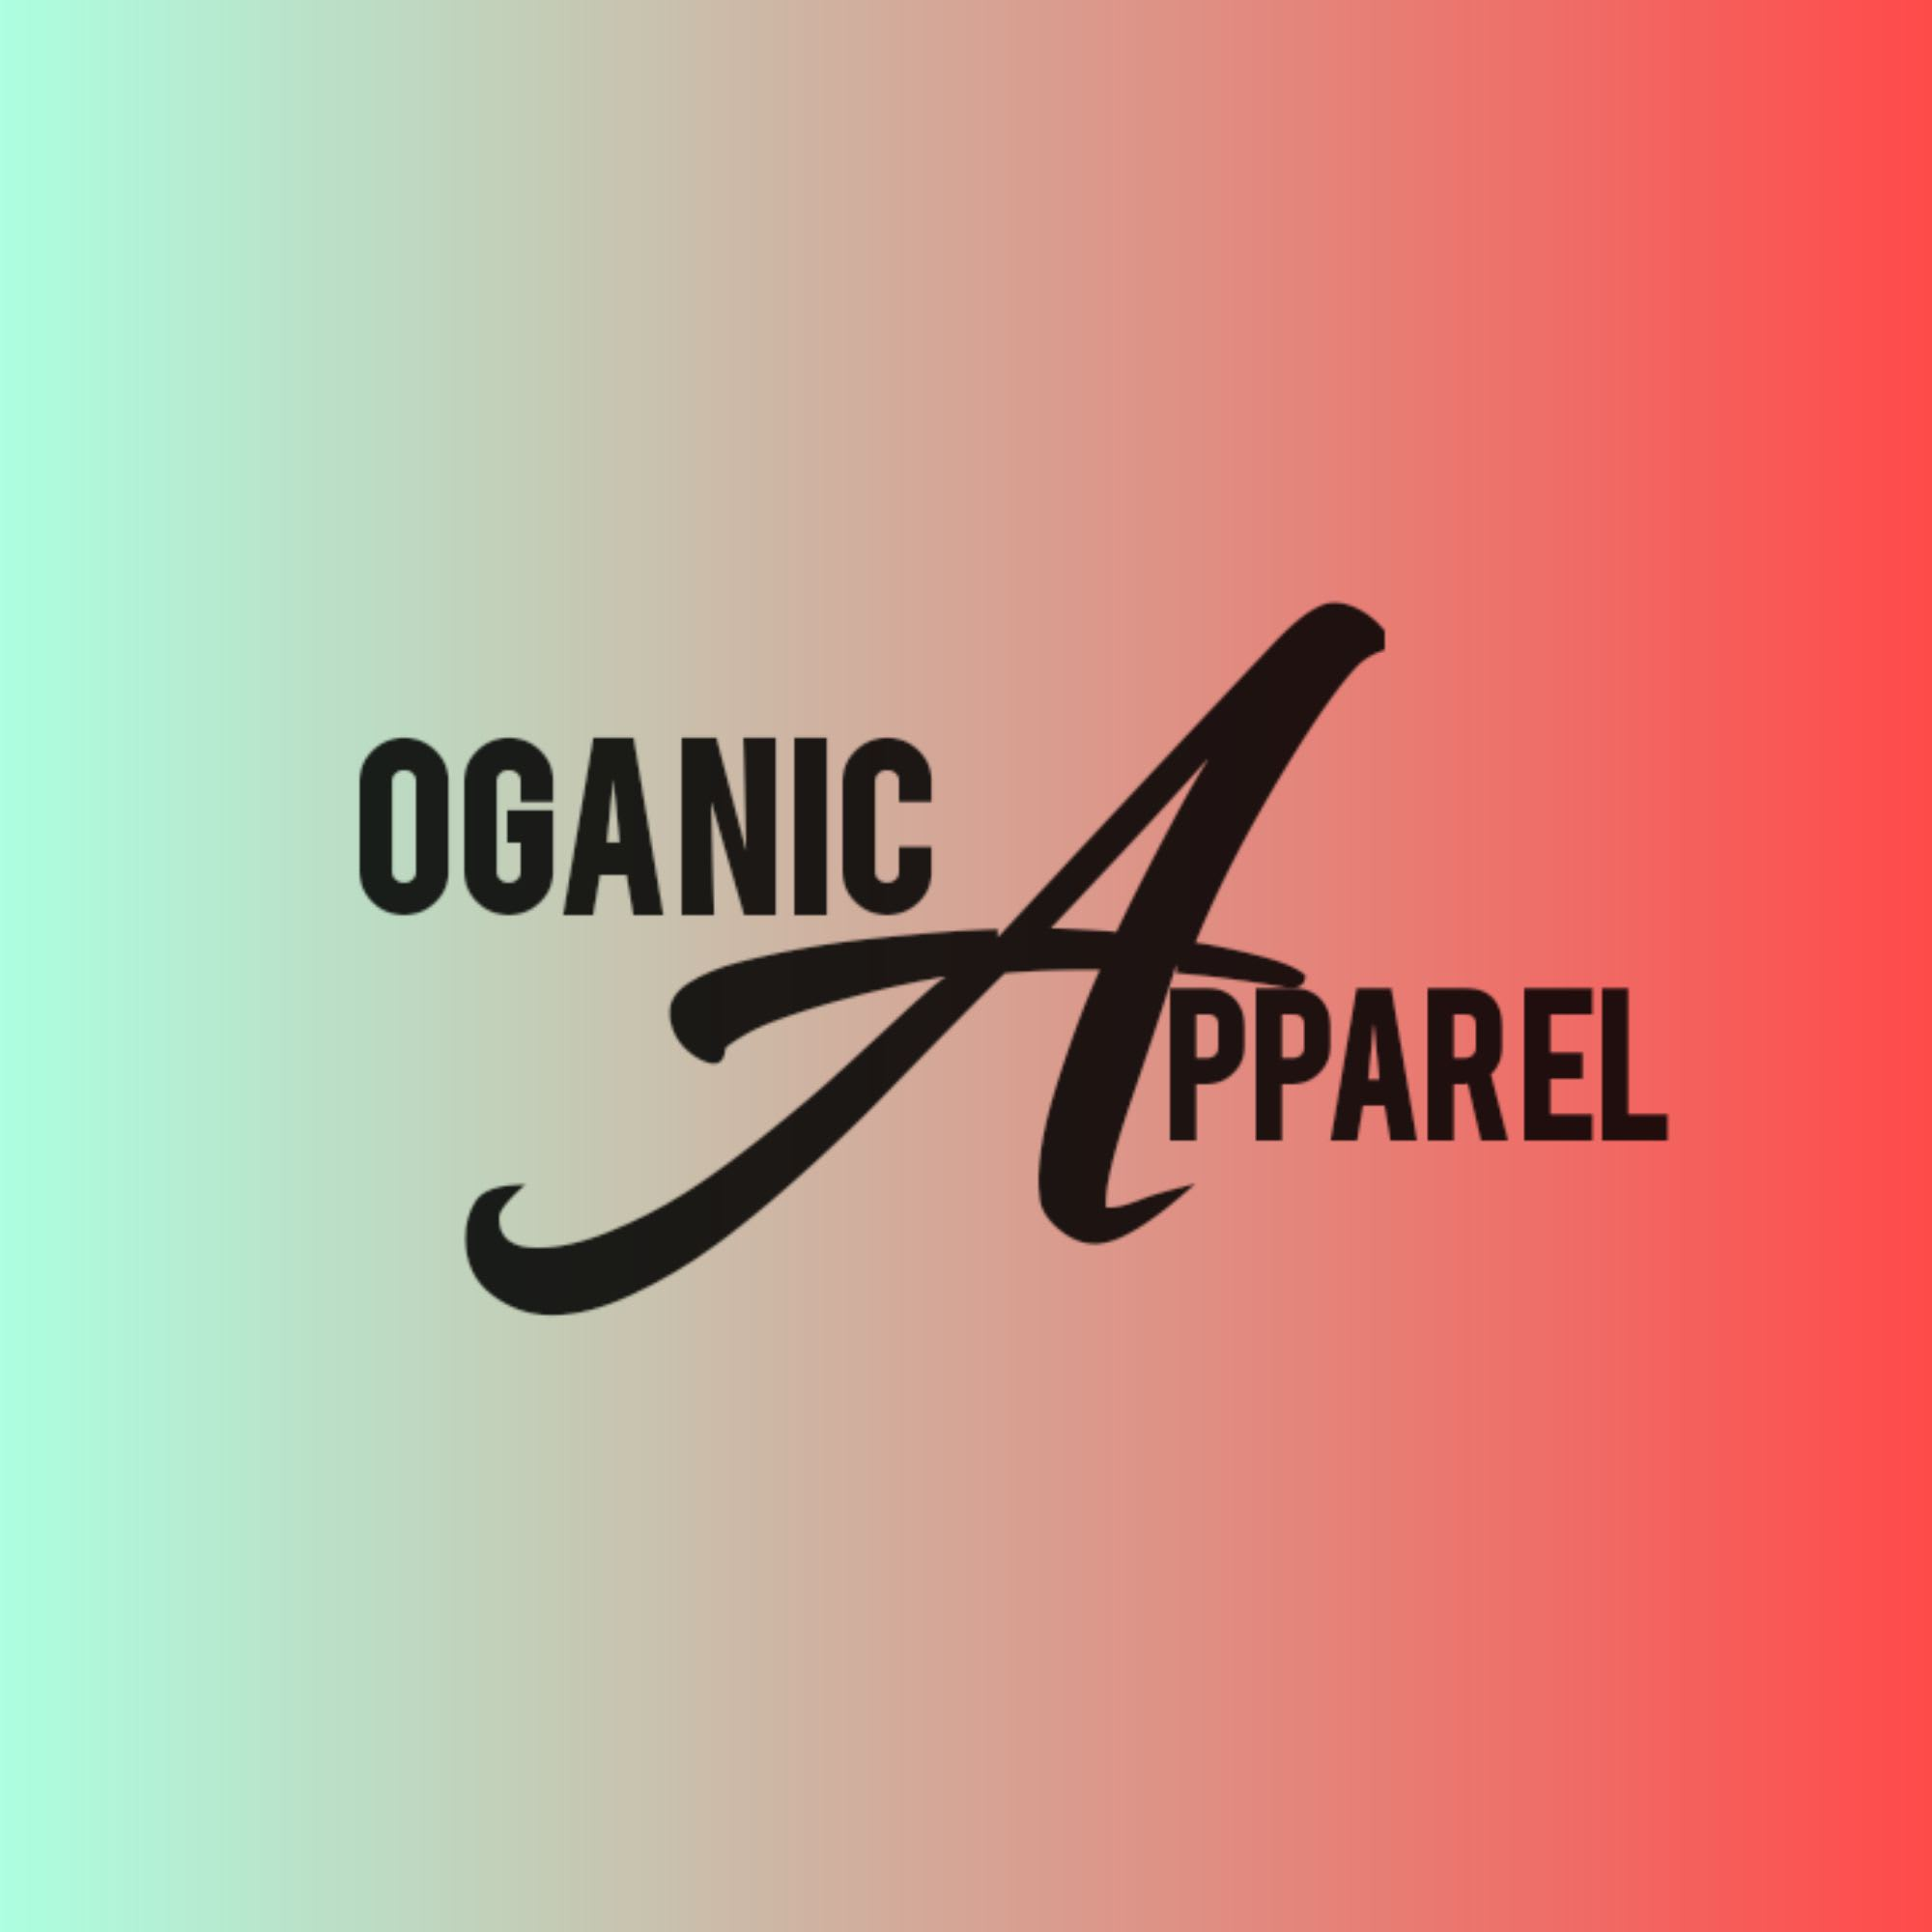 Oganic Apparel